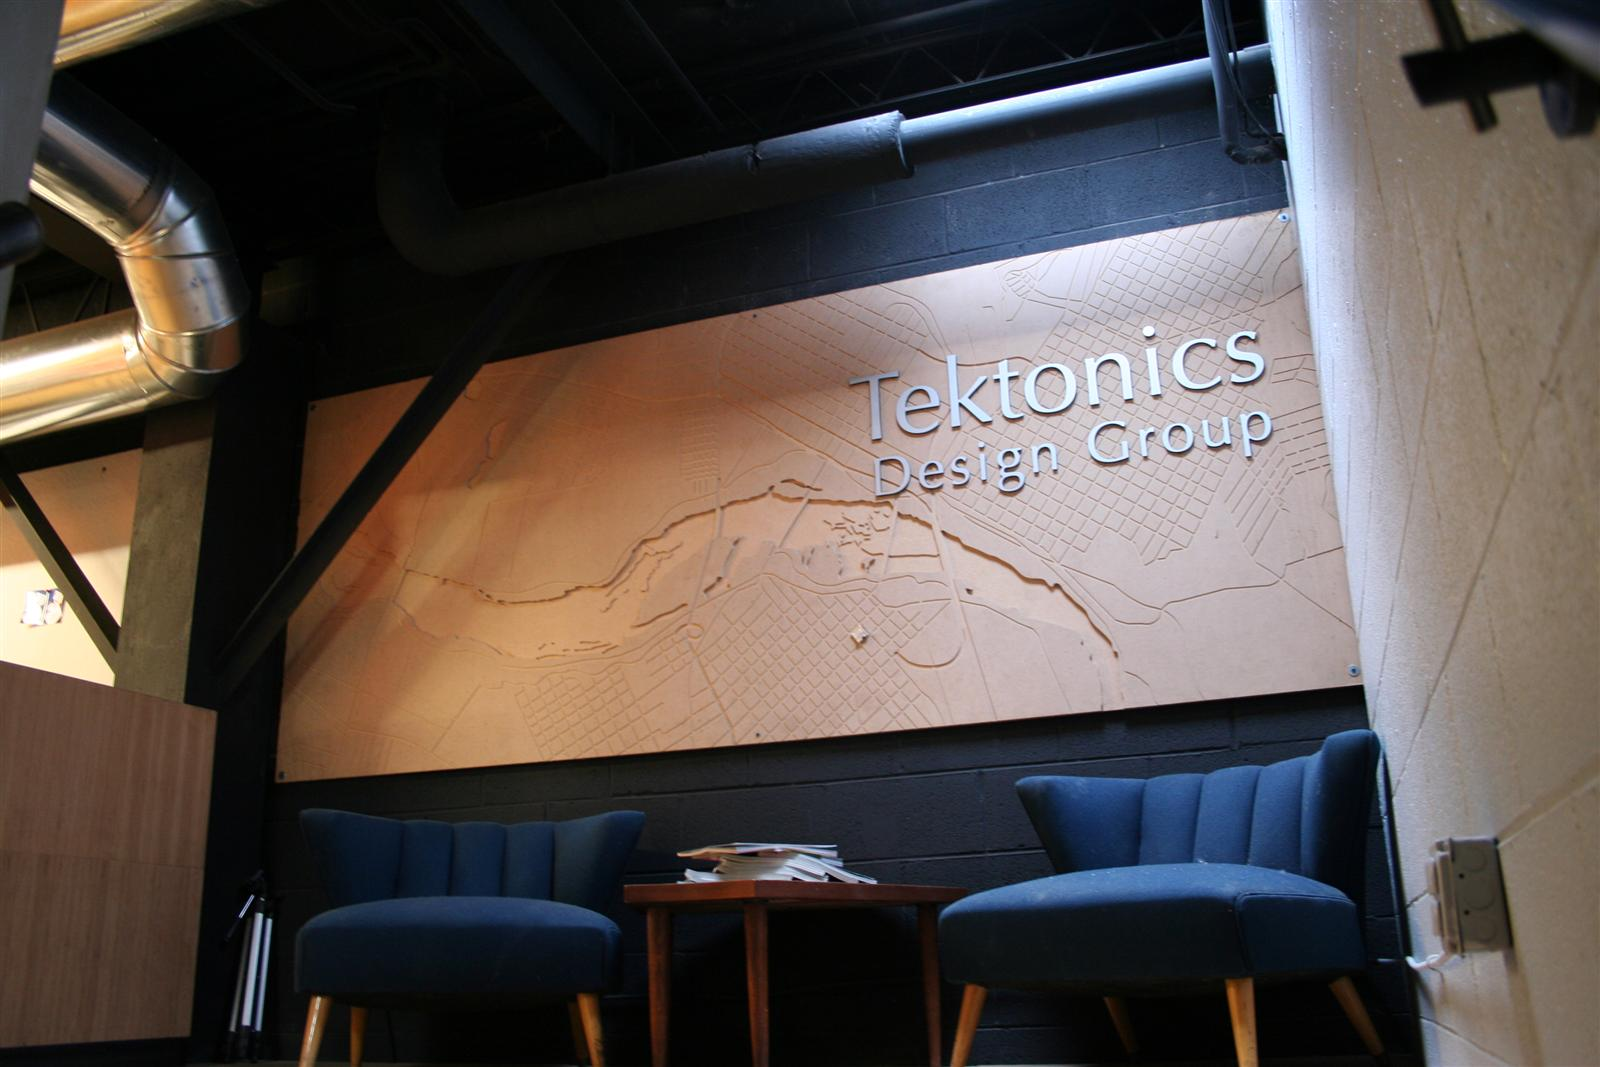 Based Tektonics Design Group Blazing Trails Into DC Territory With A Local Office Helmed By Architect And LEED AP Will Teass Working Their Hands